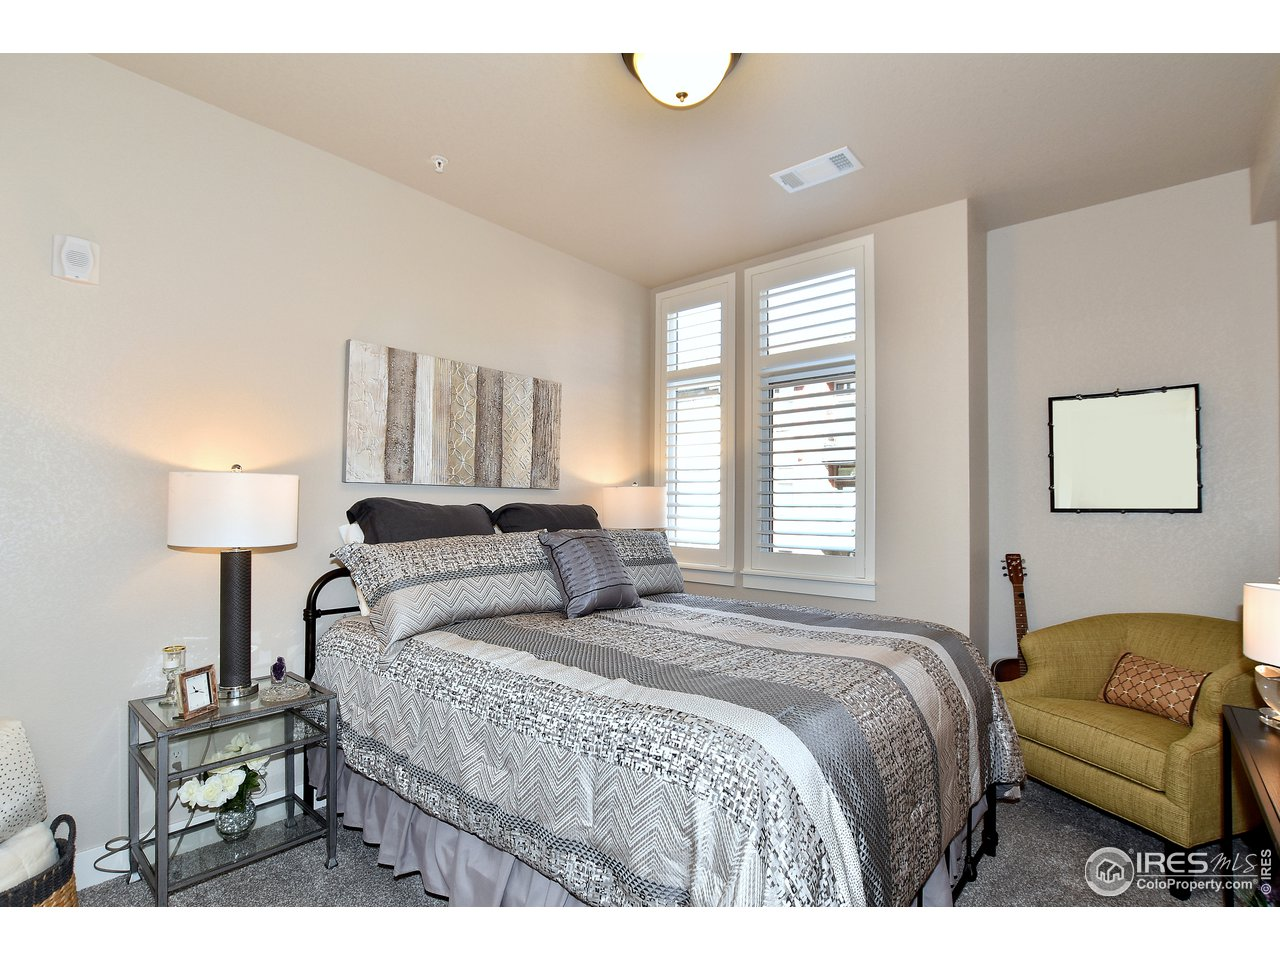 2nd large bedroom on main level